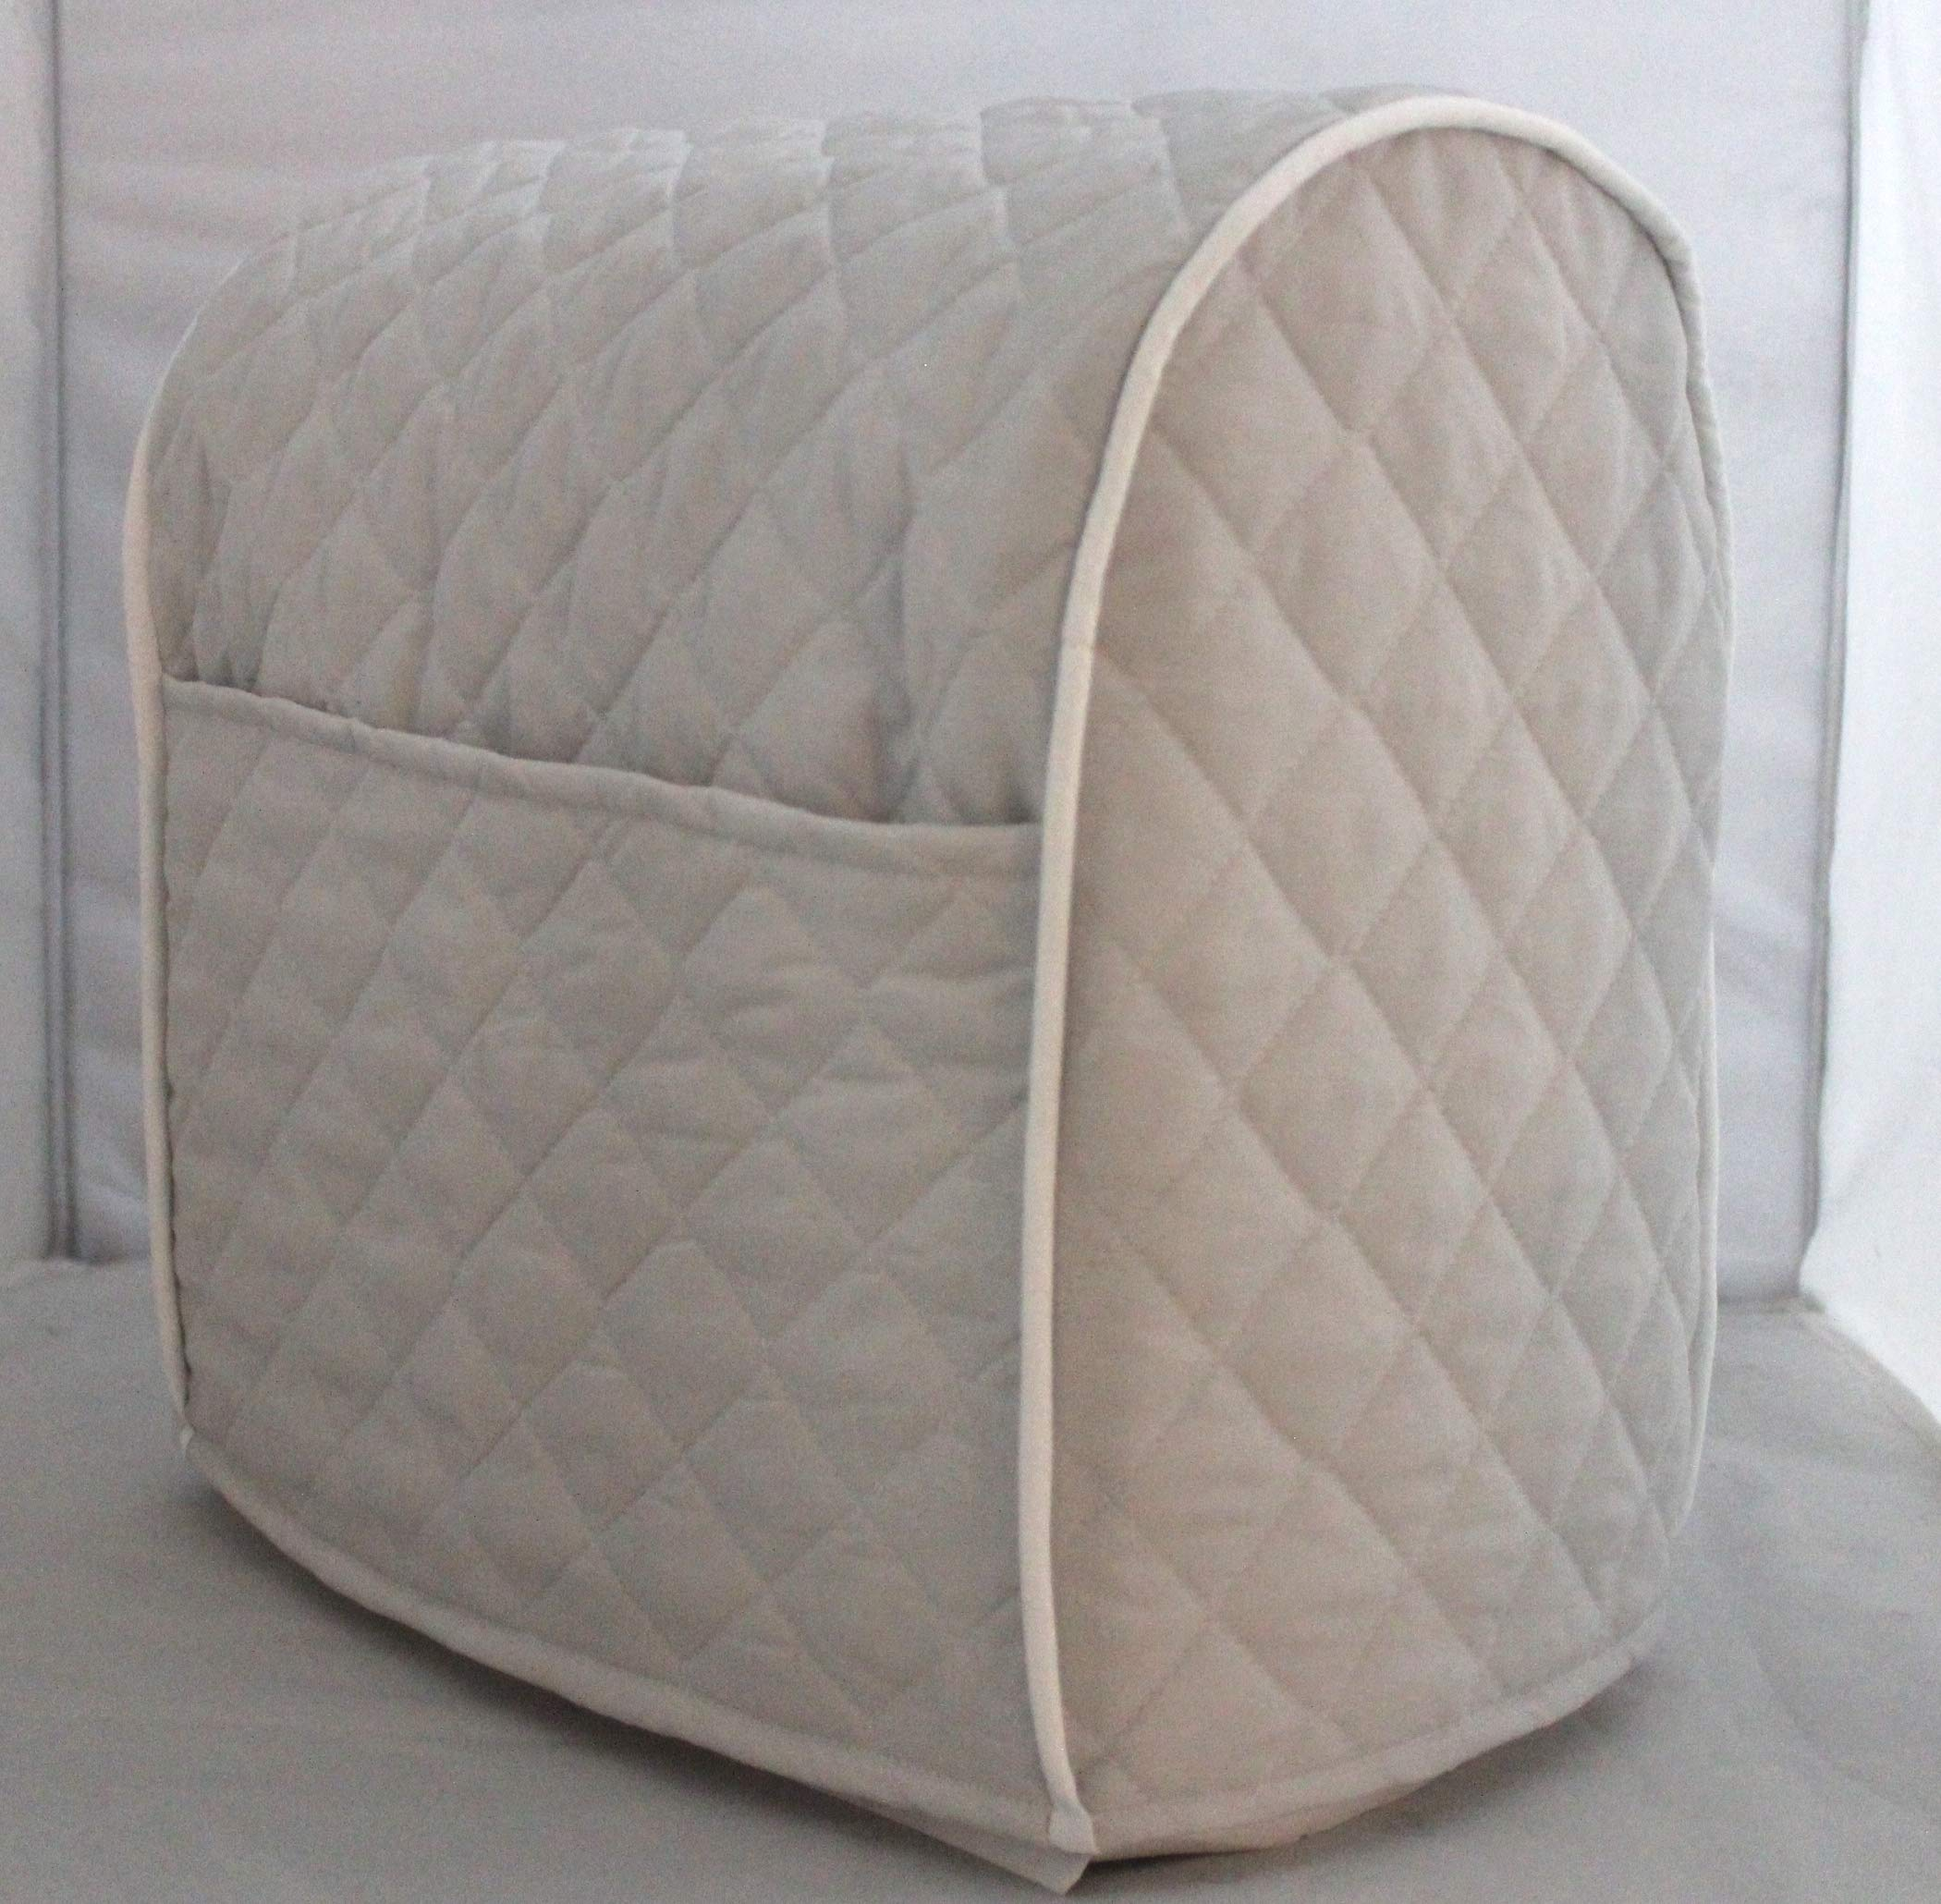 Simple Home Inspirations Quilted Cover Compatible for KitchenAid Stand Mixer, Piped with 2 Pockets (Ash Gray, Lift) by Simple Home Inspirations